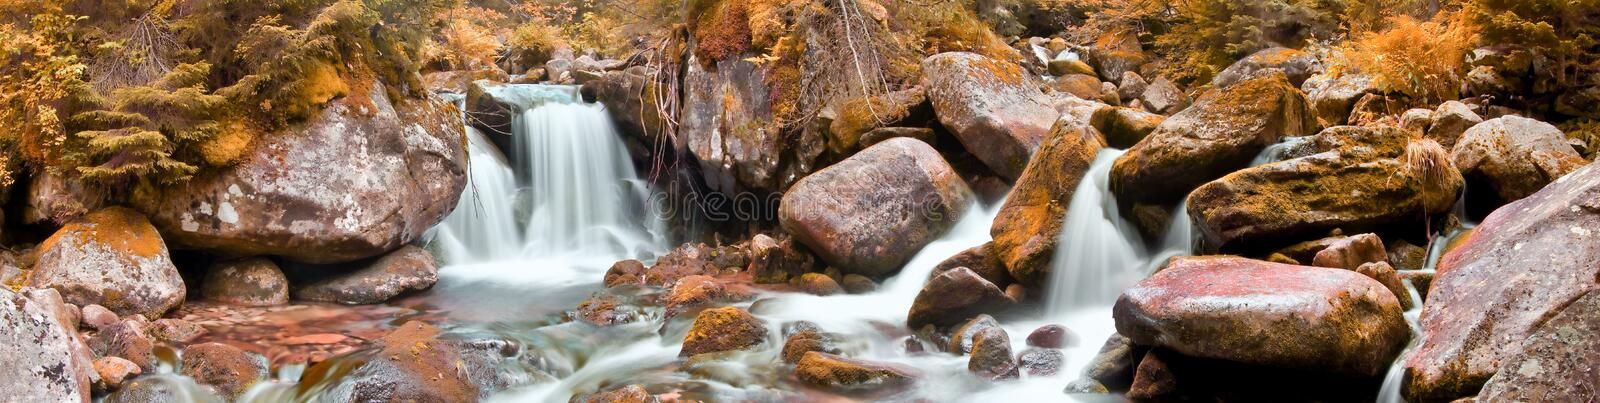 Stanisoara and Pietrele River stock images